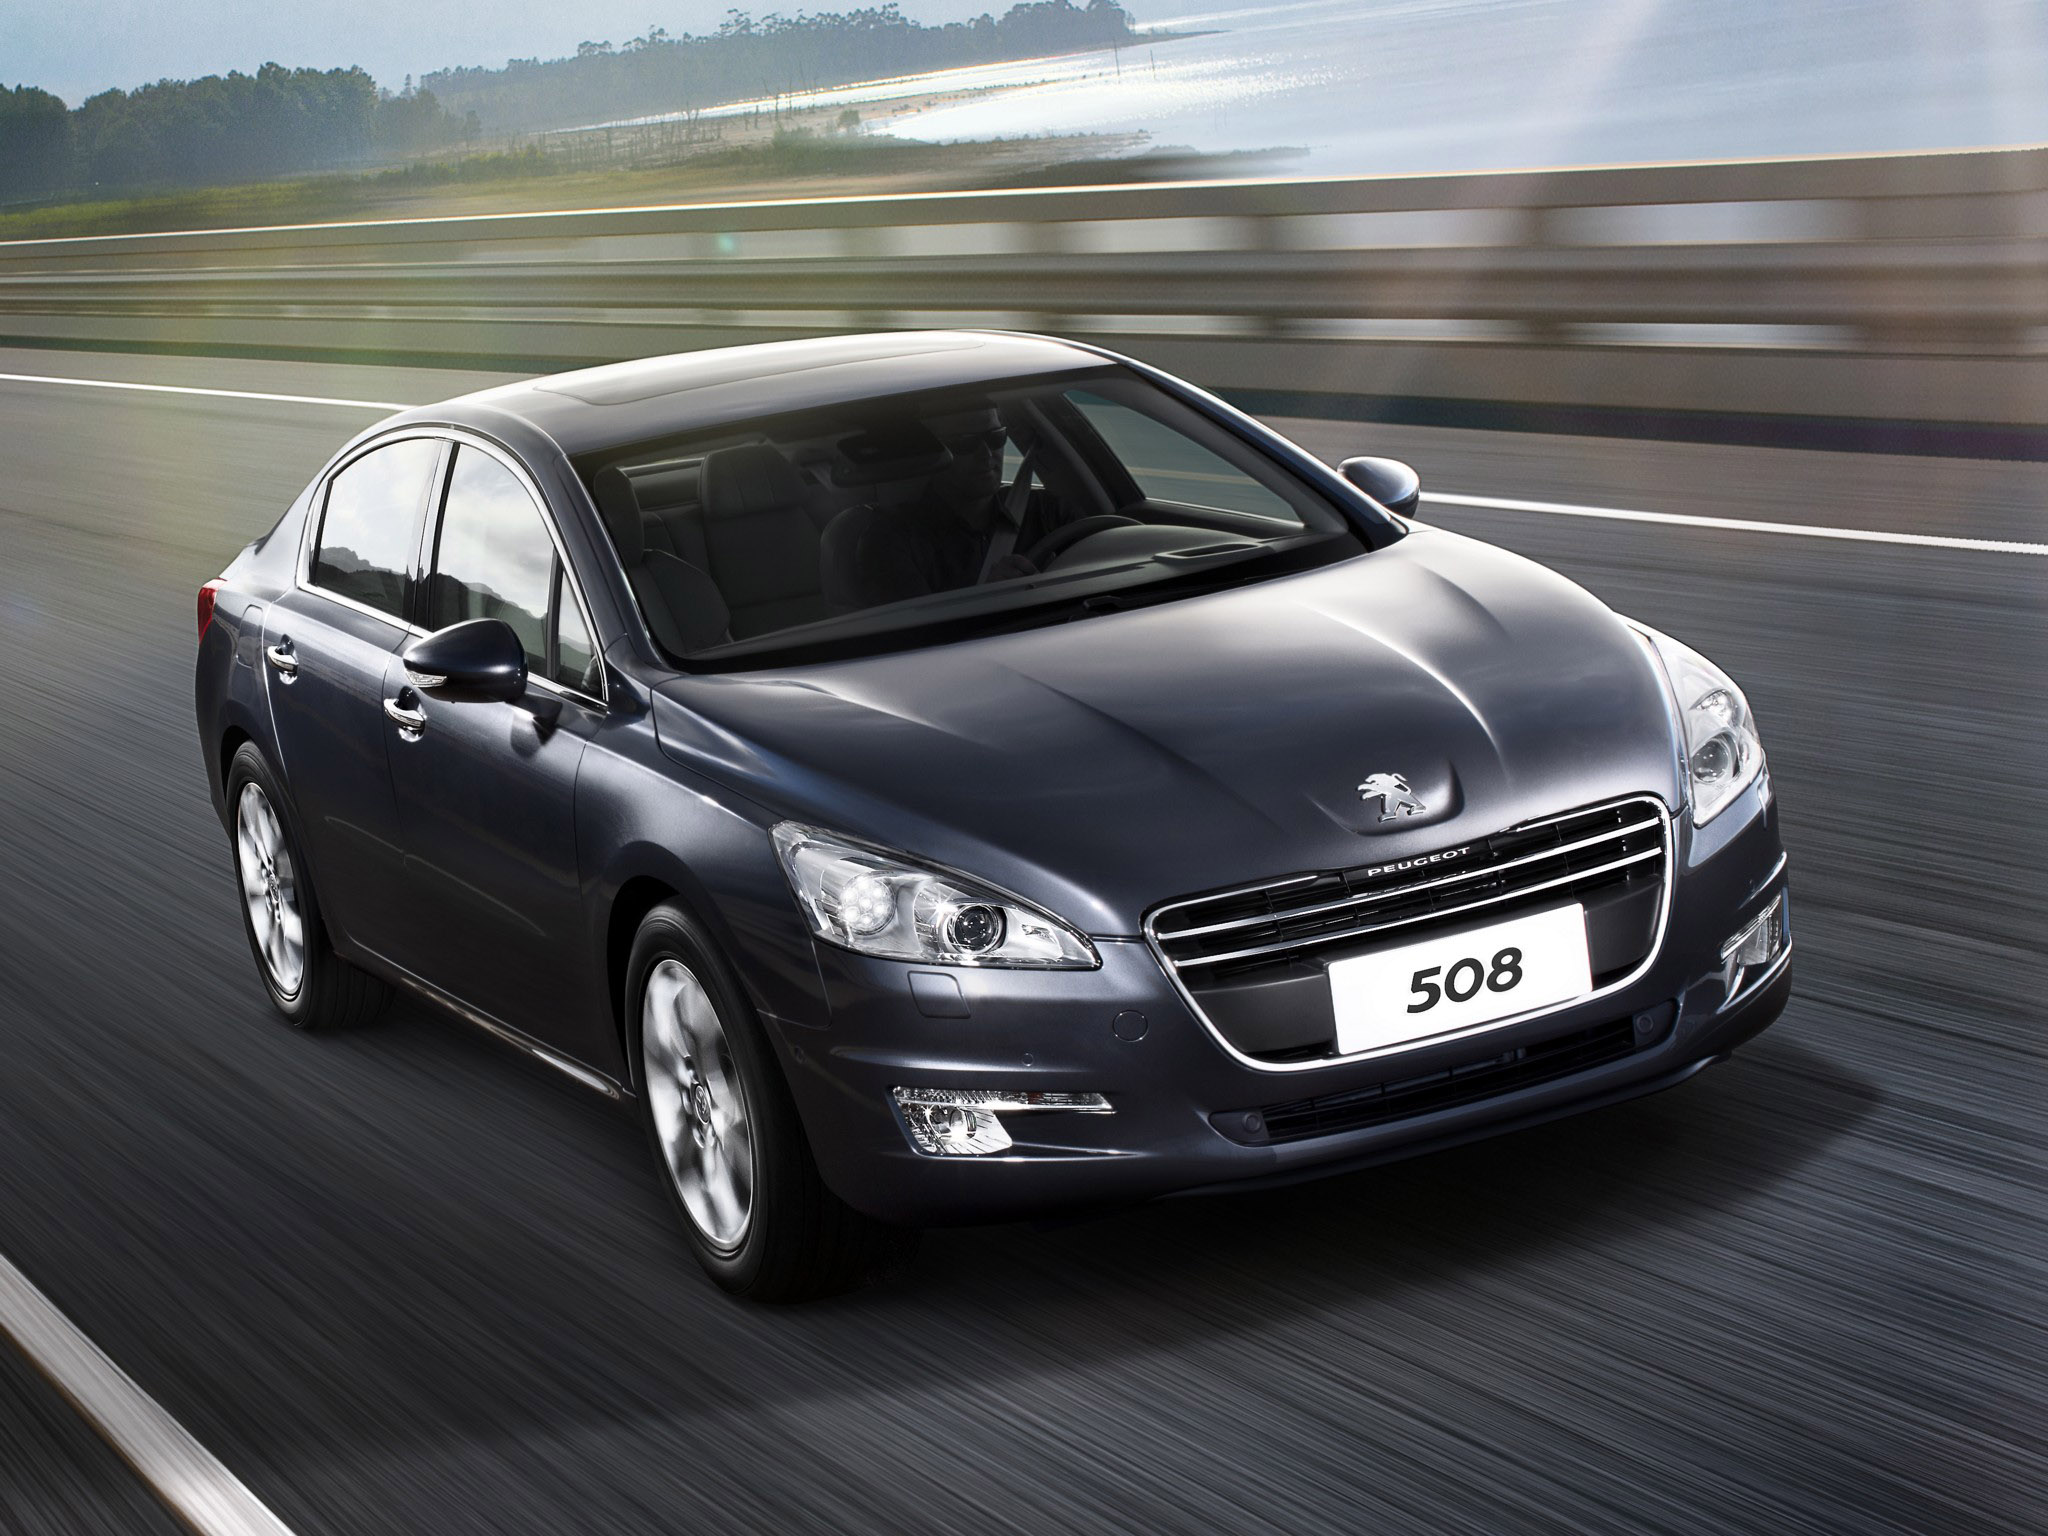 peugeot 508 sp cifications techniques et conomie de carburant